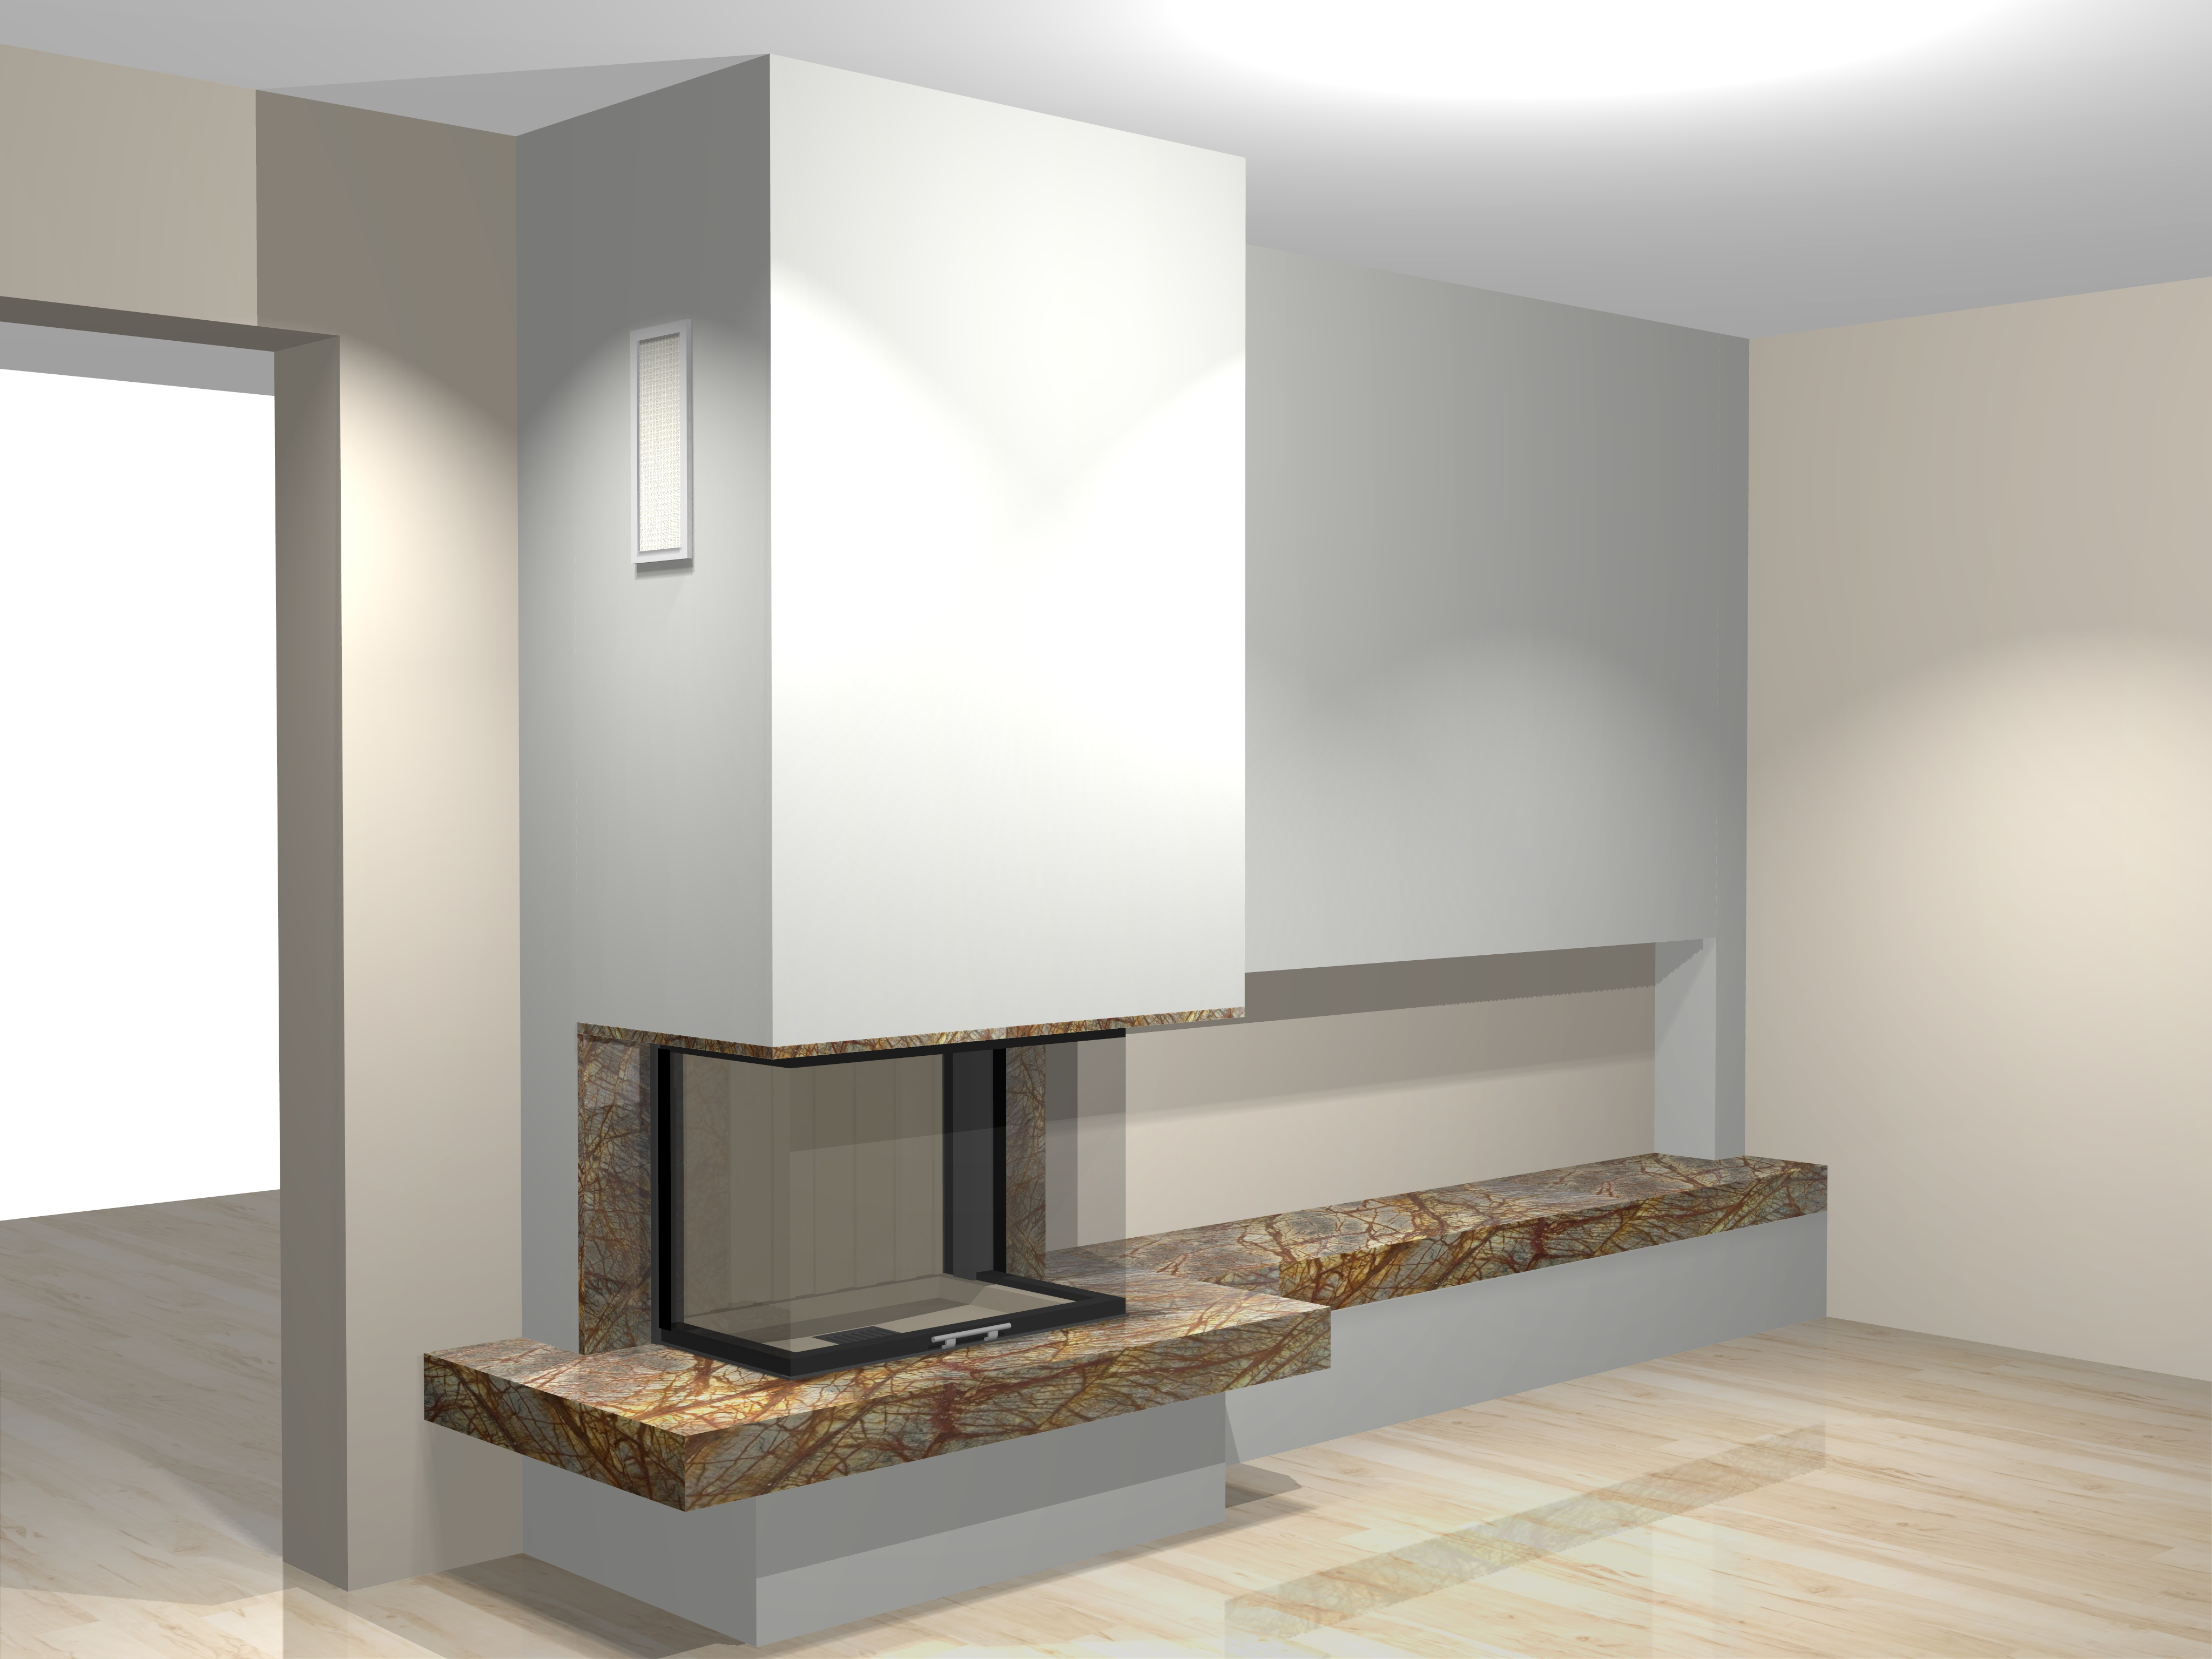 dreiseitiger kamin a 40 1 mit spartherm mit montage www. Black Bedroom Furniture Sets. Home Design Ideas